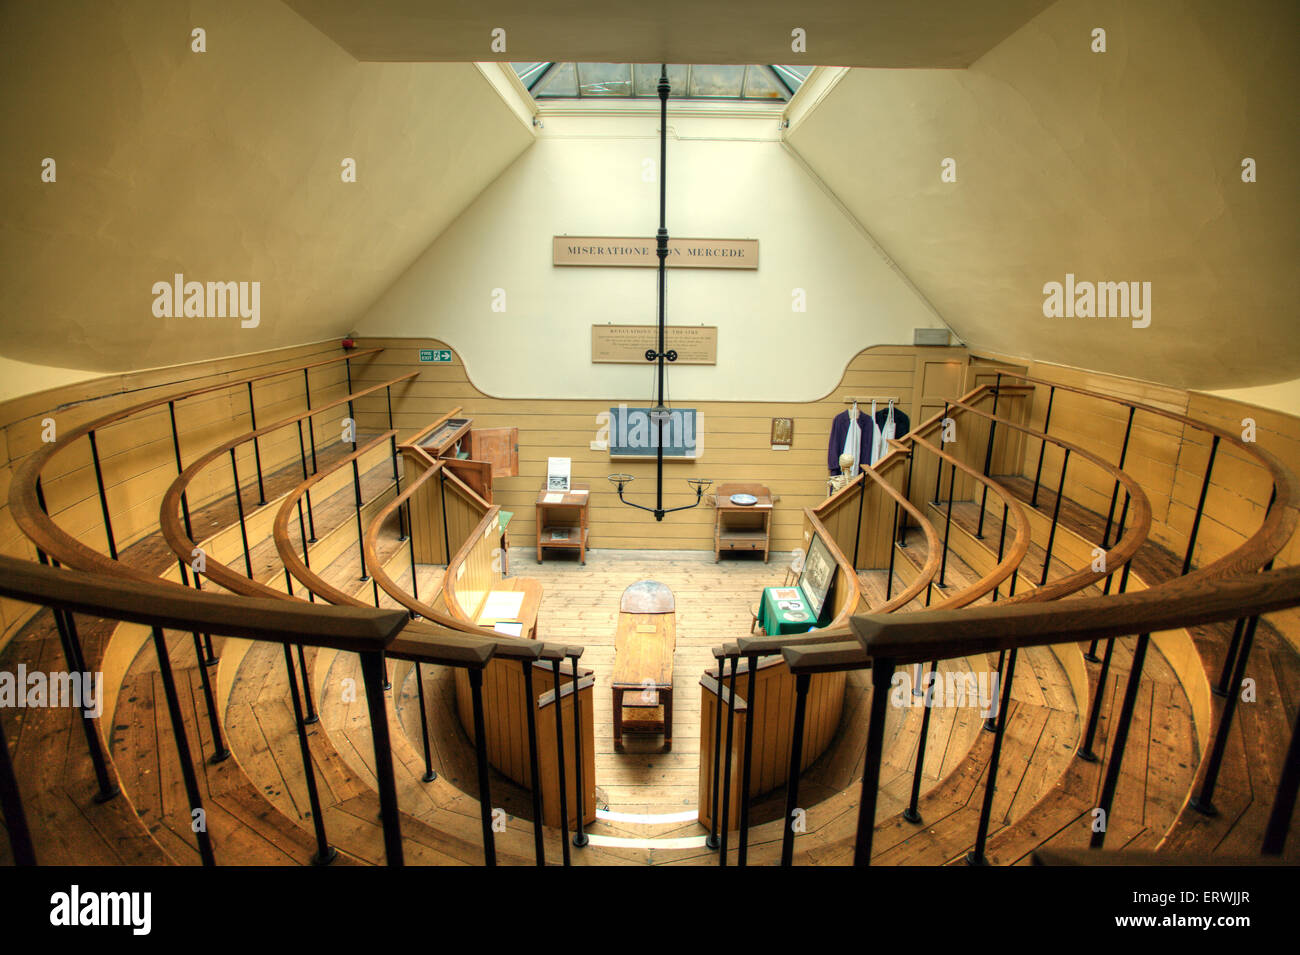 The Old Operating Theatre, Herb Garret, London Museum - Stock Image